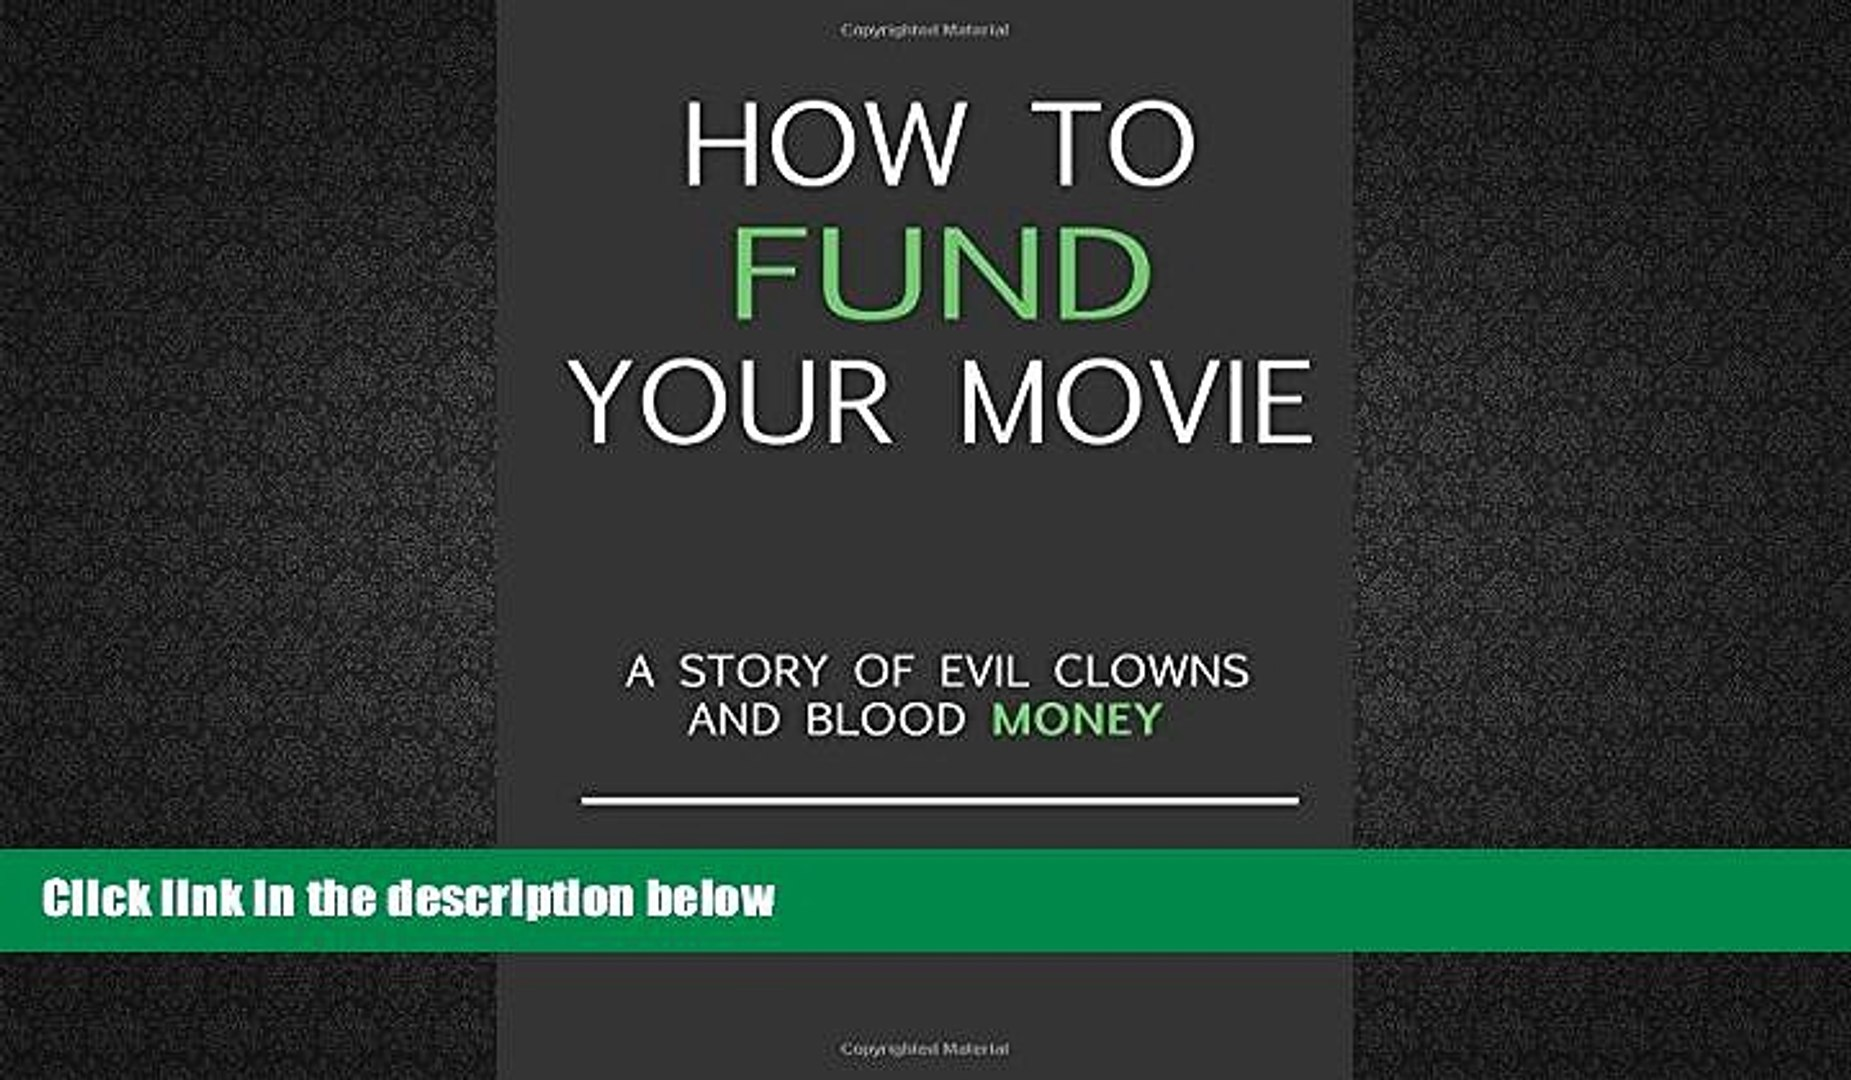 Audiobook  How to fund your movie: A story of evil clowns and blood money Trial Ebook